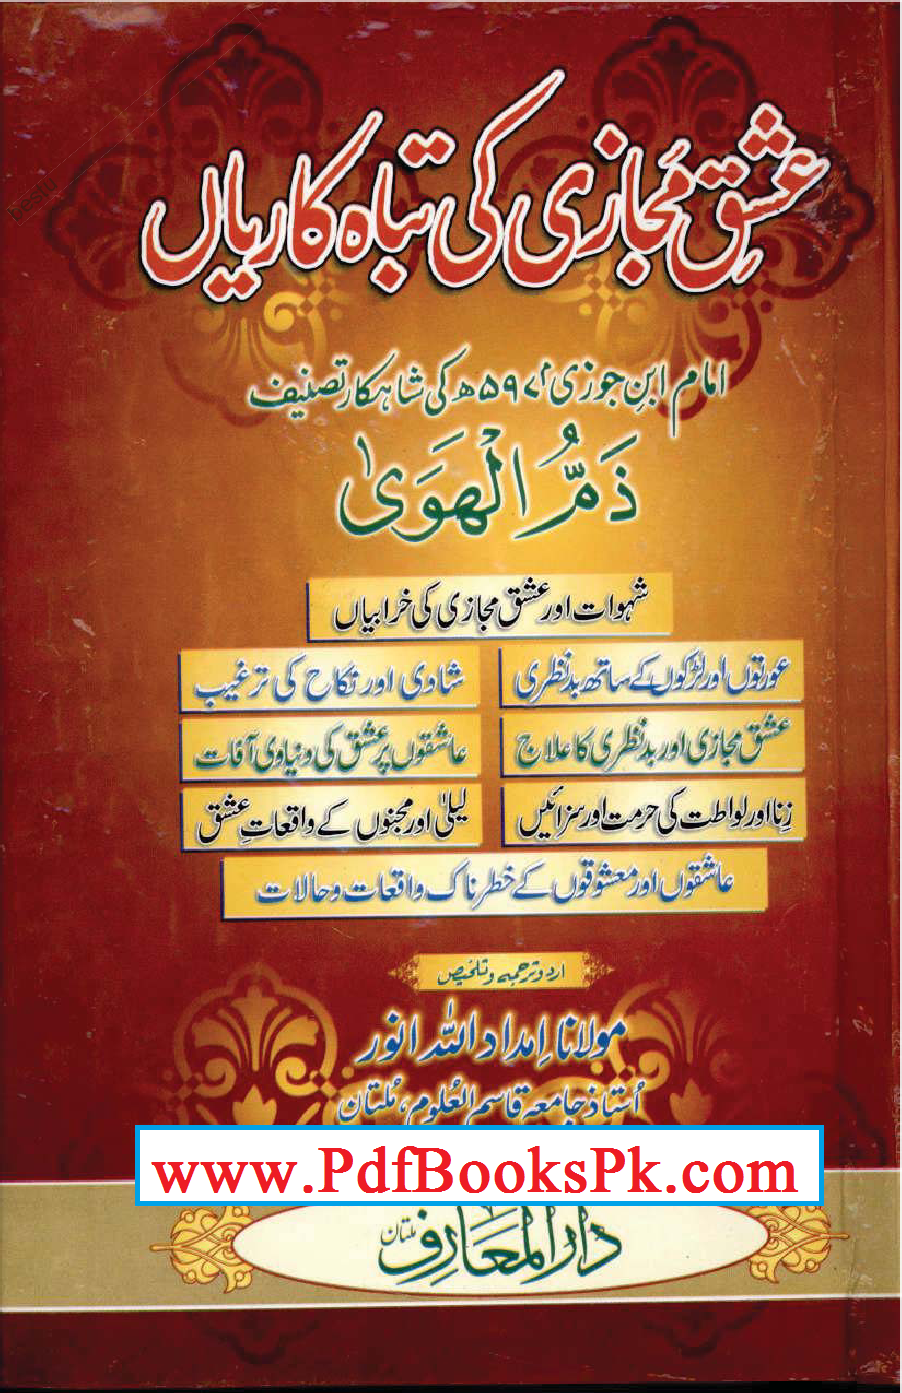 salab ki tabah kariyan per eak soo pachas sitroon ka mazmoon urdu main Ishq-e-majazi ki tabah kariyan is a books & reference app developed by aashir ishq-e-majazi ki tabah kariyan pdf urdu book is all about the distractions of virtual lovethis book, is written about the distractions watching female and male with lustful sights,also suggested the remedies how to avoid.